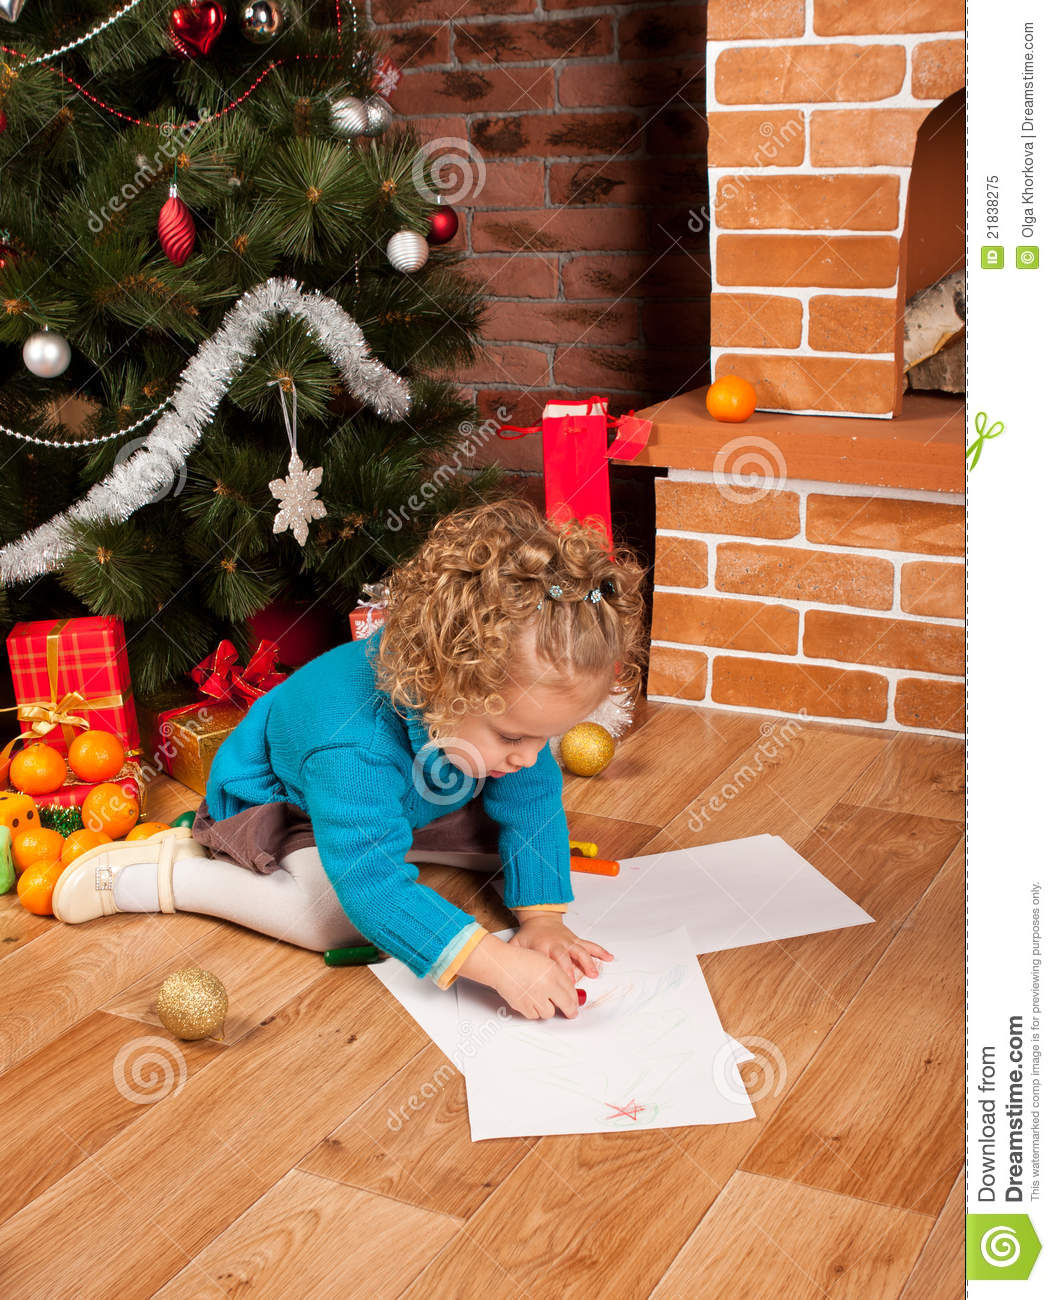 Little Girl Christmas Tree: Little Girl Drawing Near Christmas Tree Stock Image